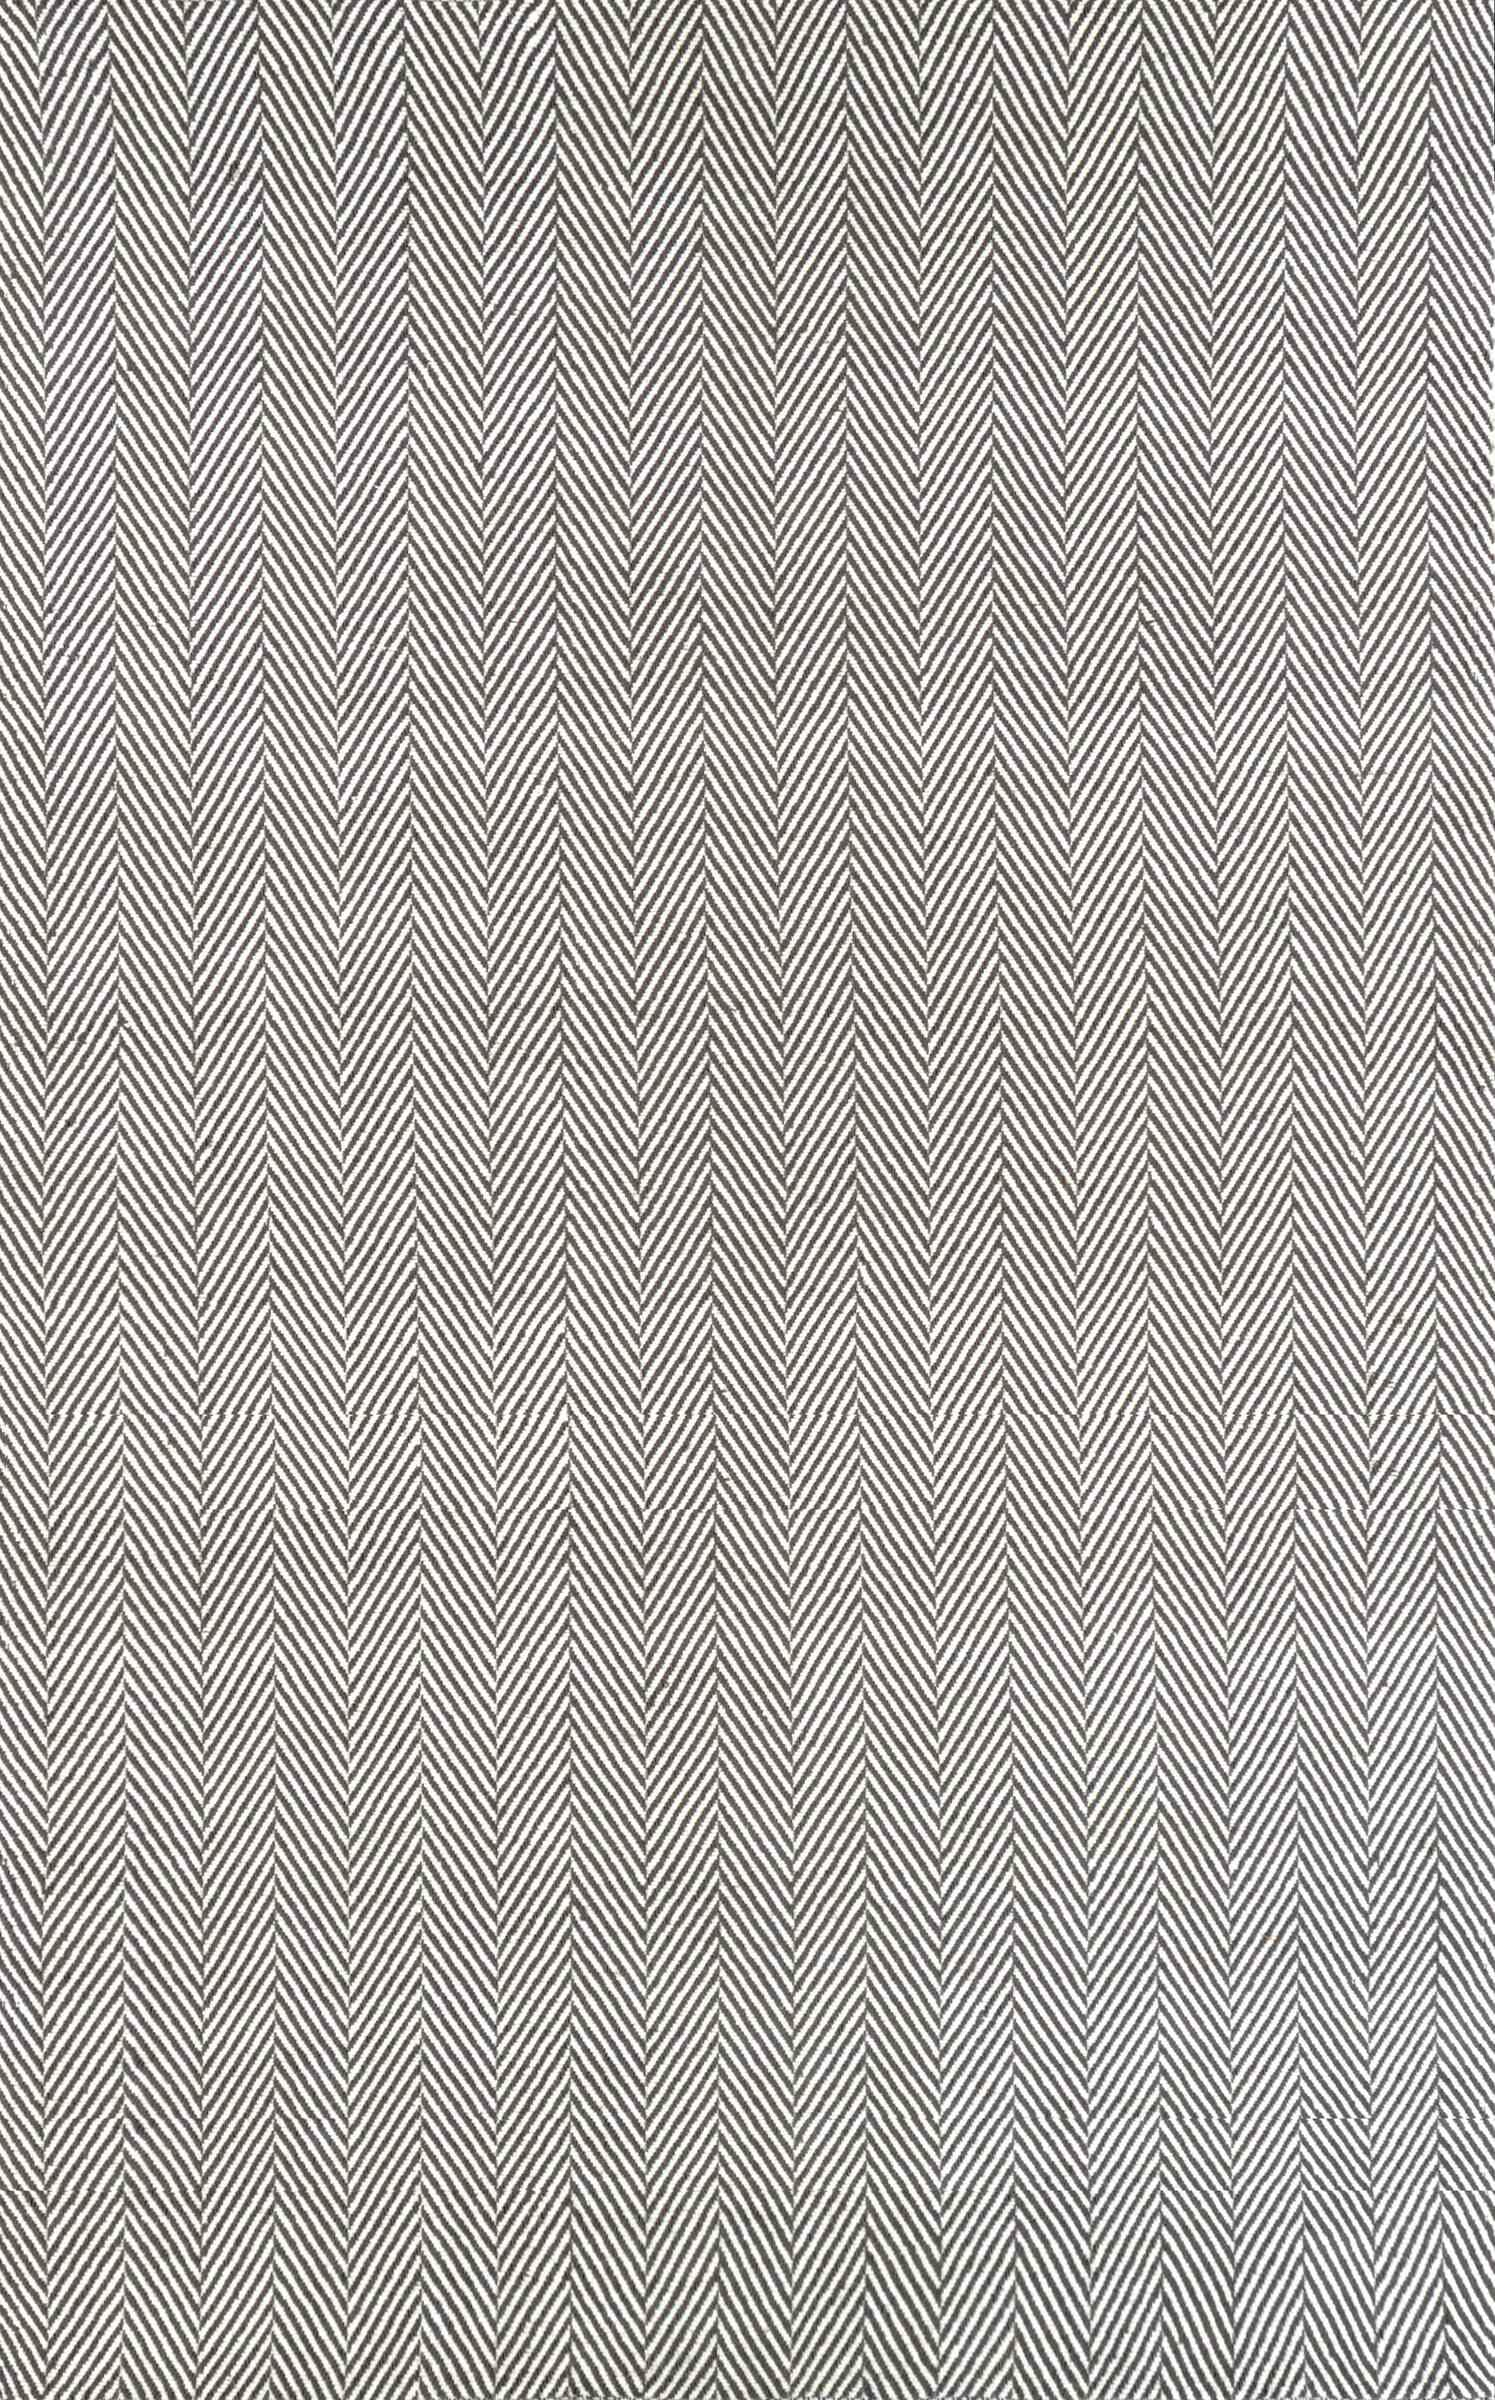 Calvert Hand-Woven Gray Area Rug Rug Size: Rectangle 9' x 12'